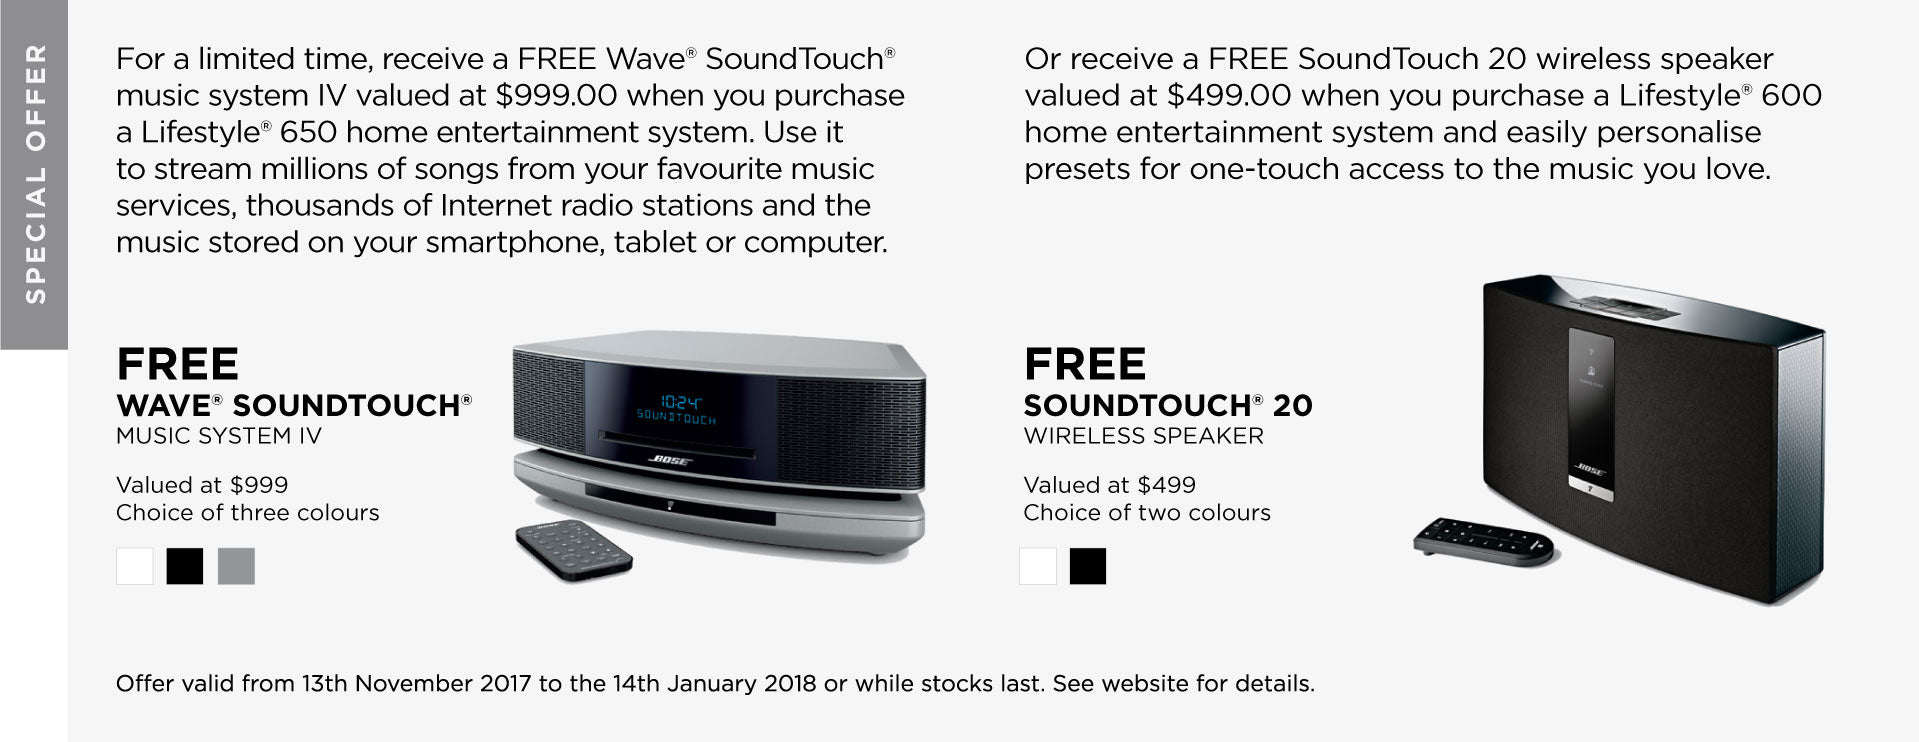 Bose Special Offer FREE Soundwave or Soundtouch